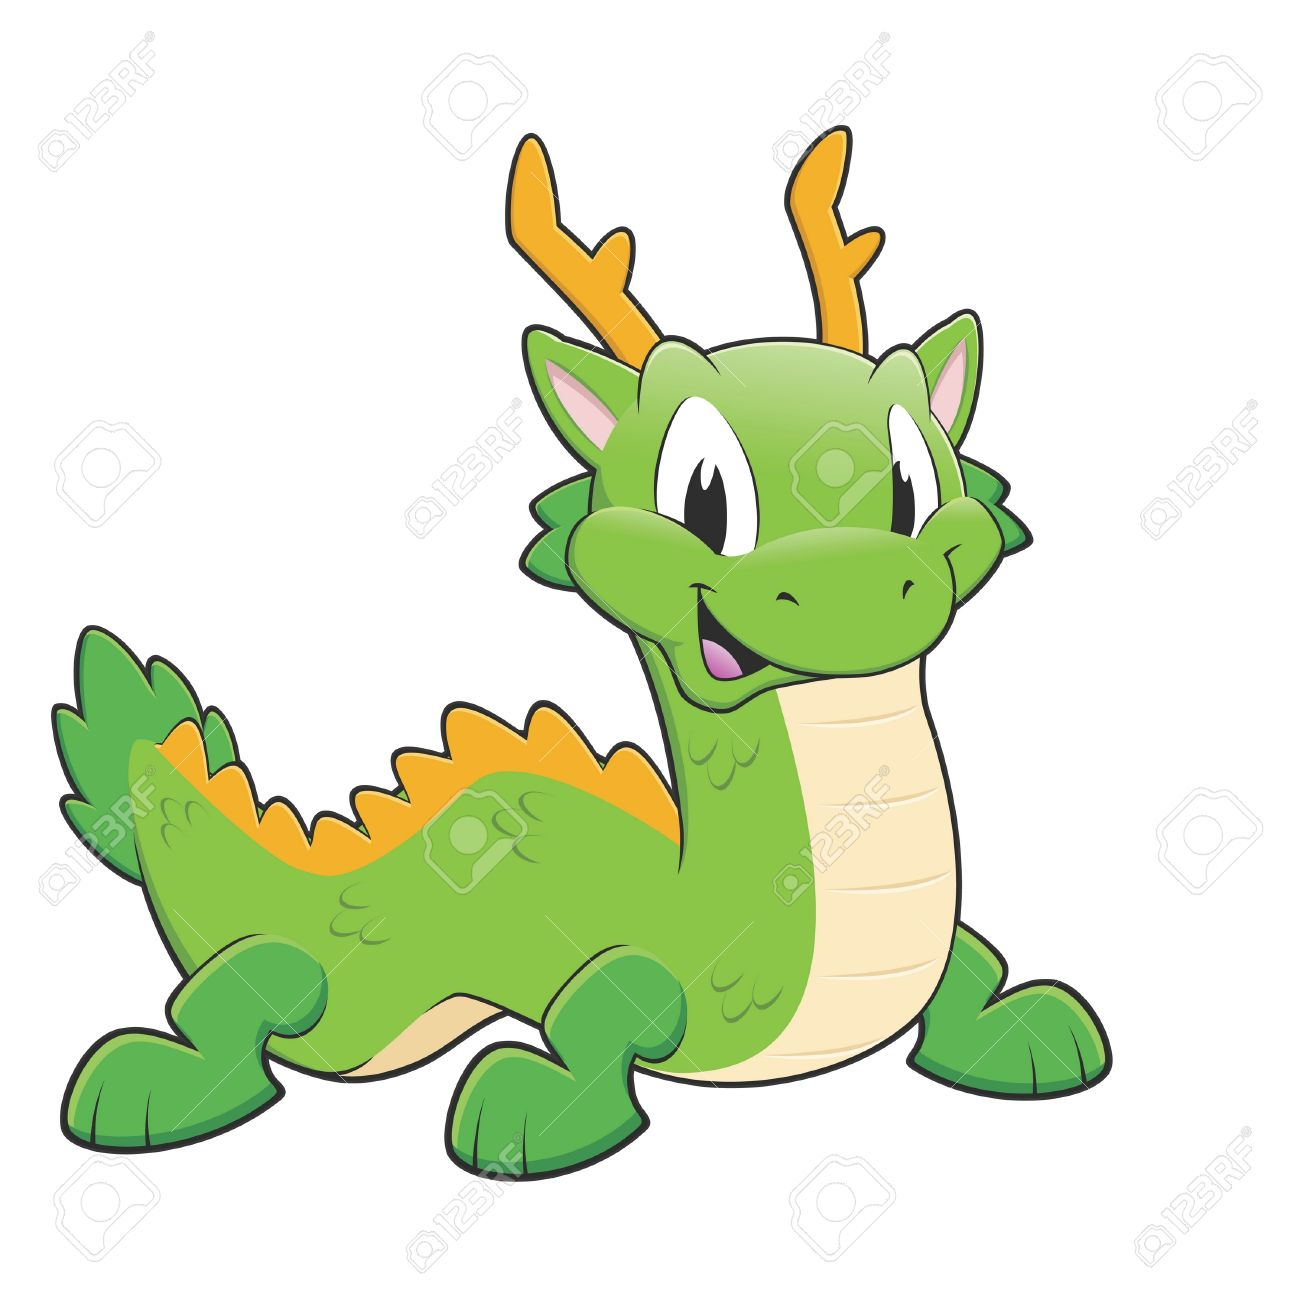 1300x1300 Dragon Clipart China Dragon Free Collection Download And Share